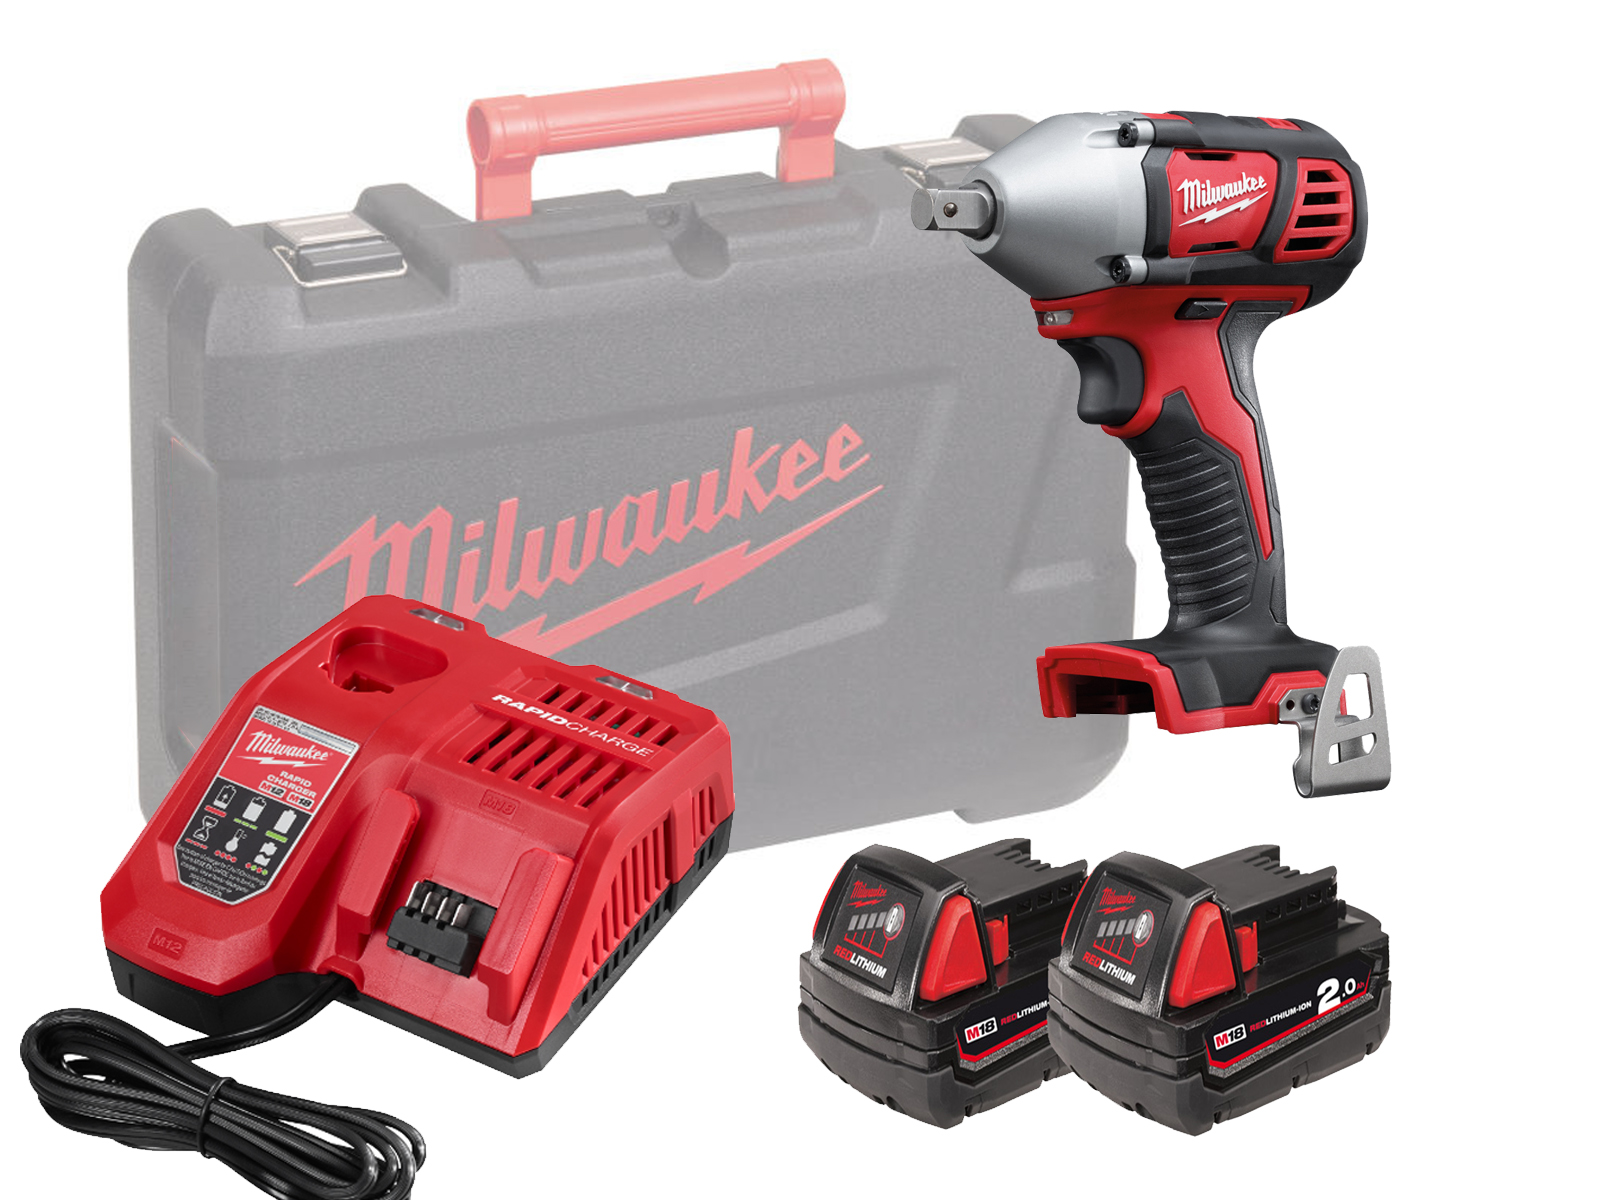 "MILWAUKEE 18V BRUSHED IMPACT WRENCH 1/2"" - M18BIW12 - 2.0AH PACK"